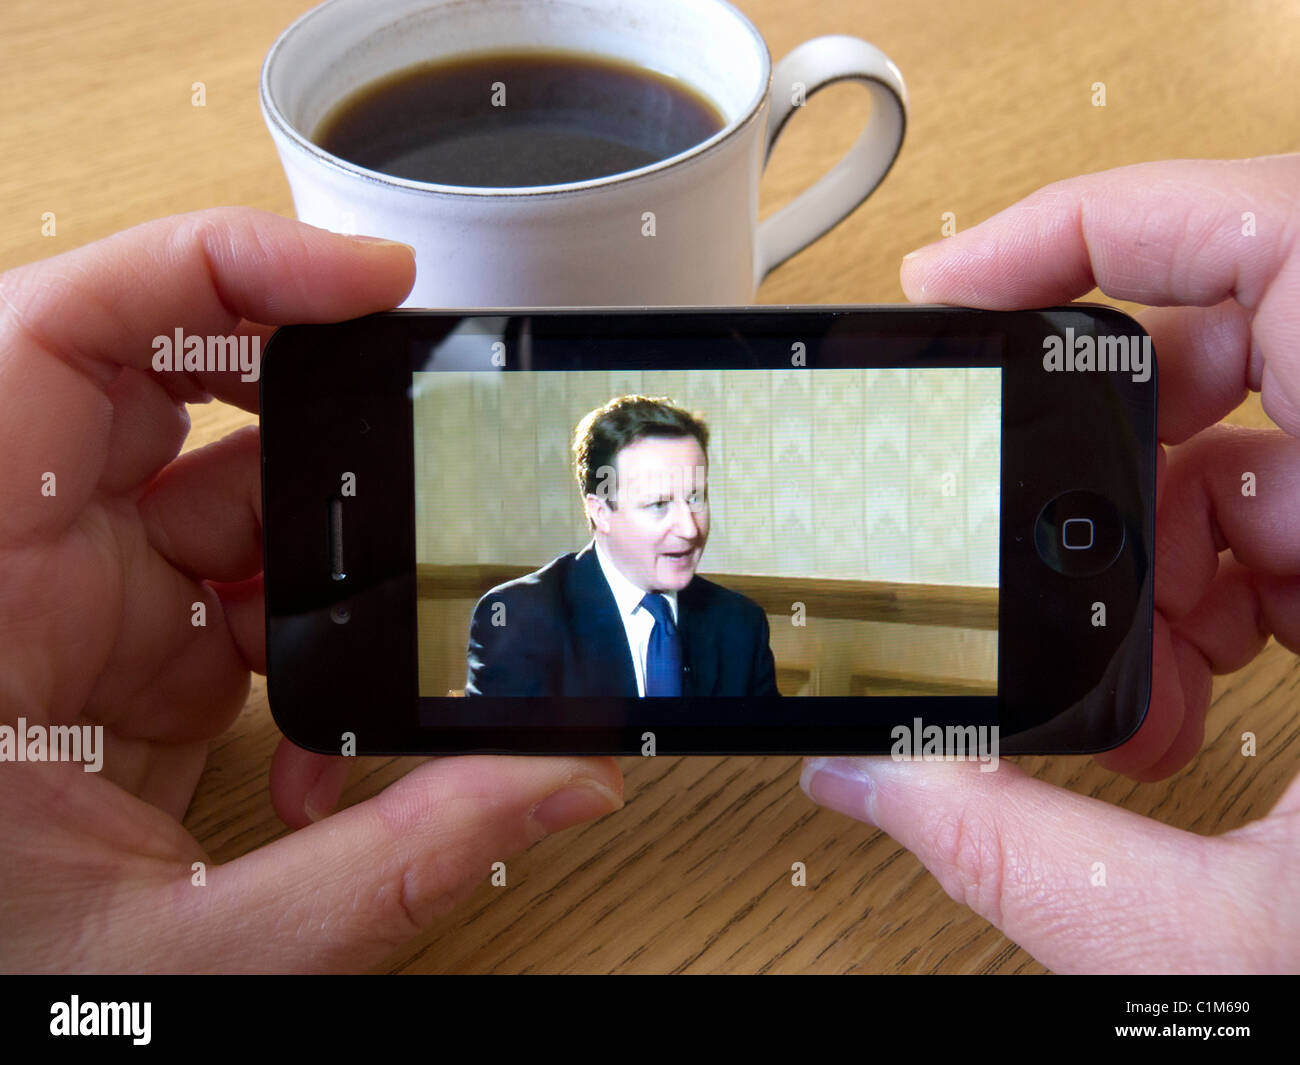 Watching video news of British Prime Minister David Cameron via Youtube on an Apple iphone 4G smart phone - Stock Image